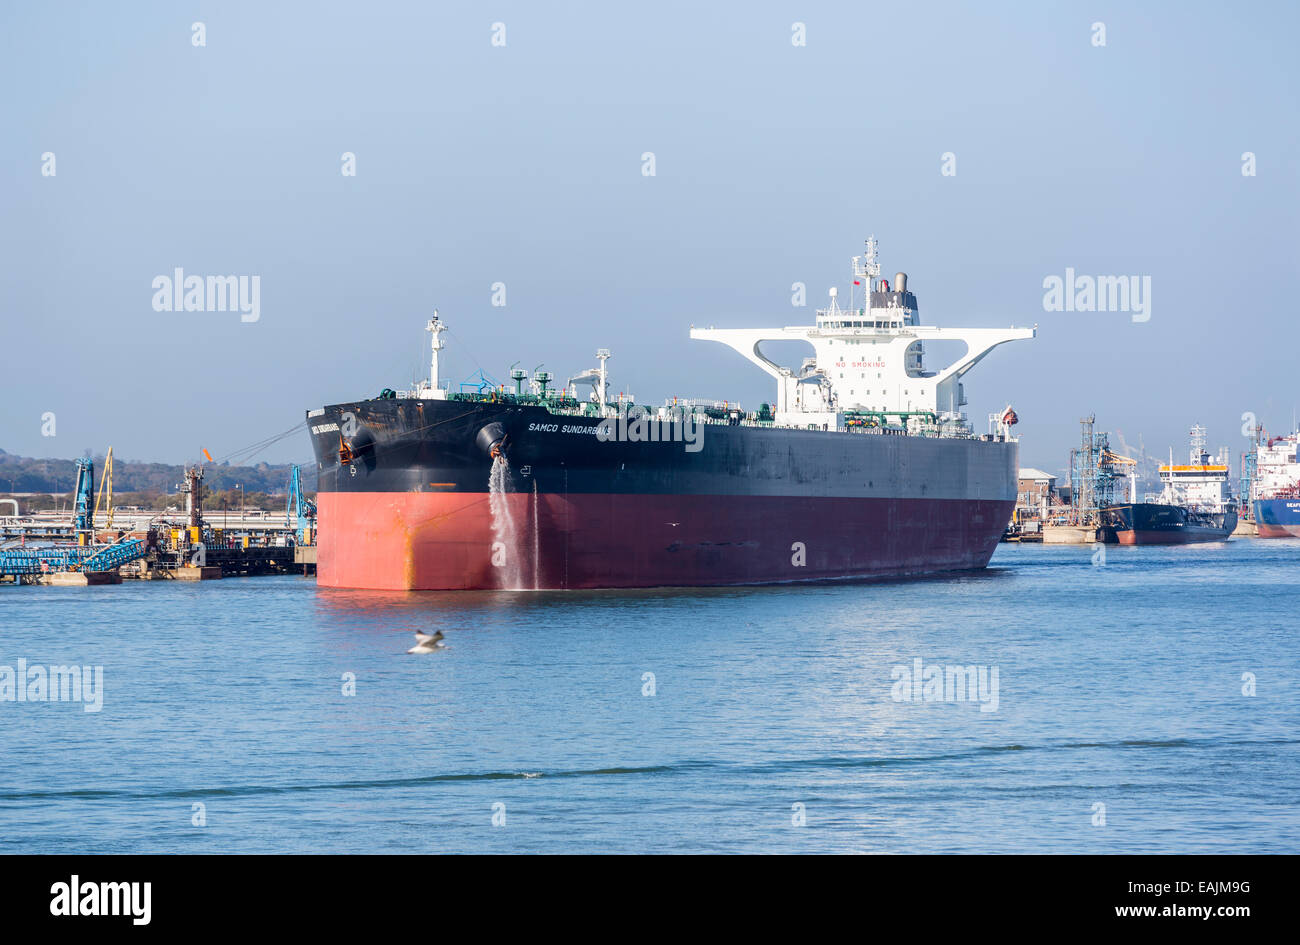 Oil tankers, including 'Samco Sunderbans', moored at the